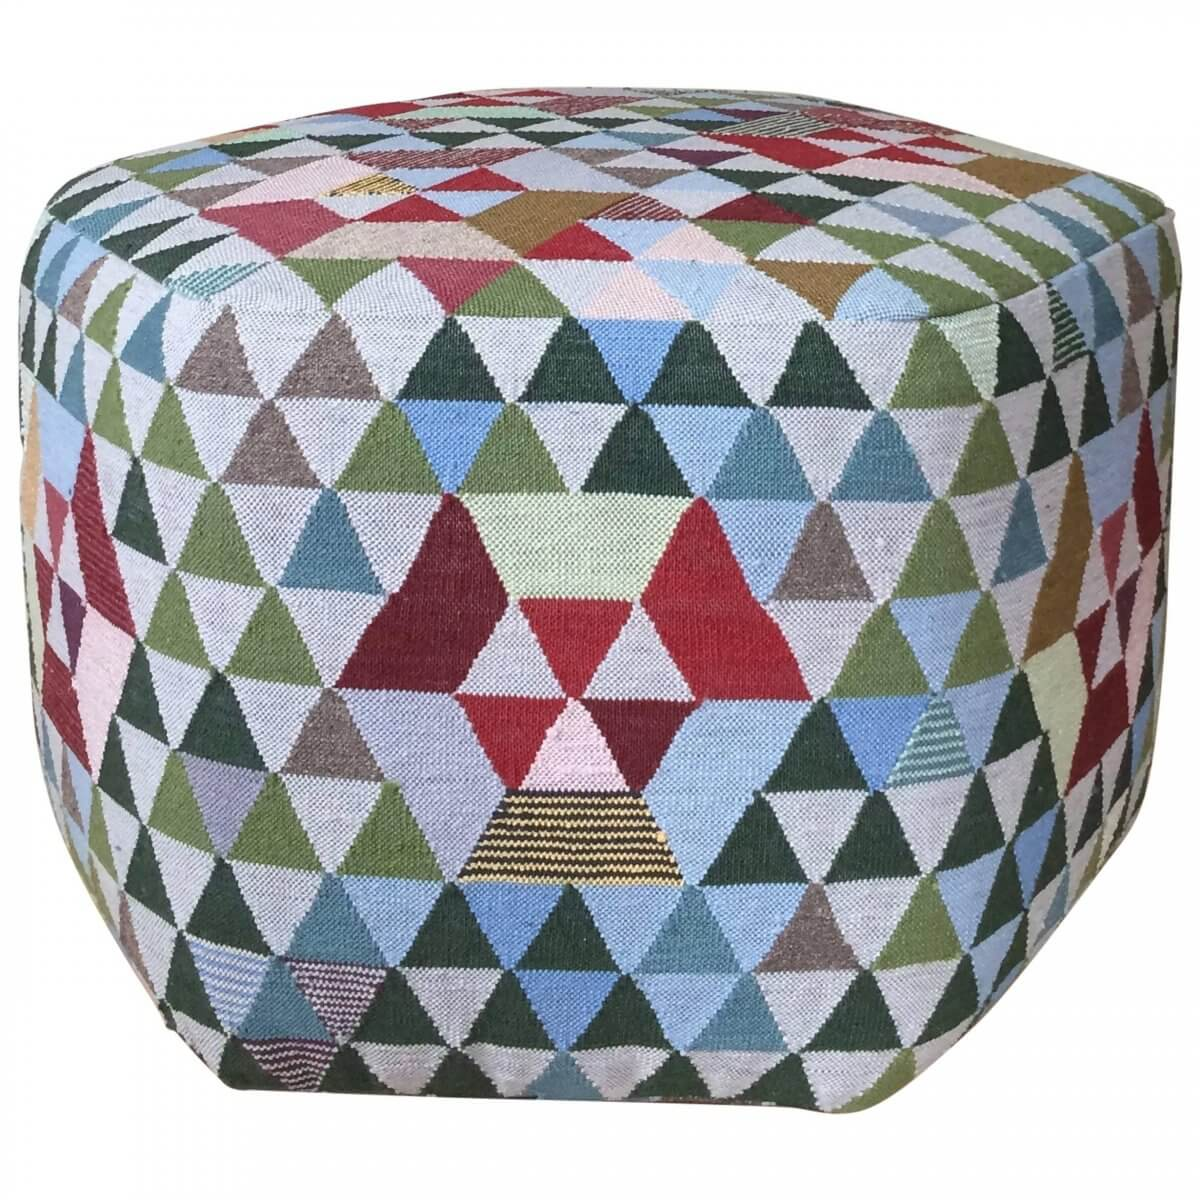 'Triangles' Pouf Trianglehex 'Sweet Green'